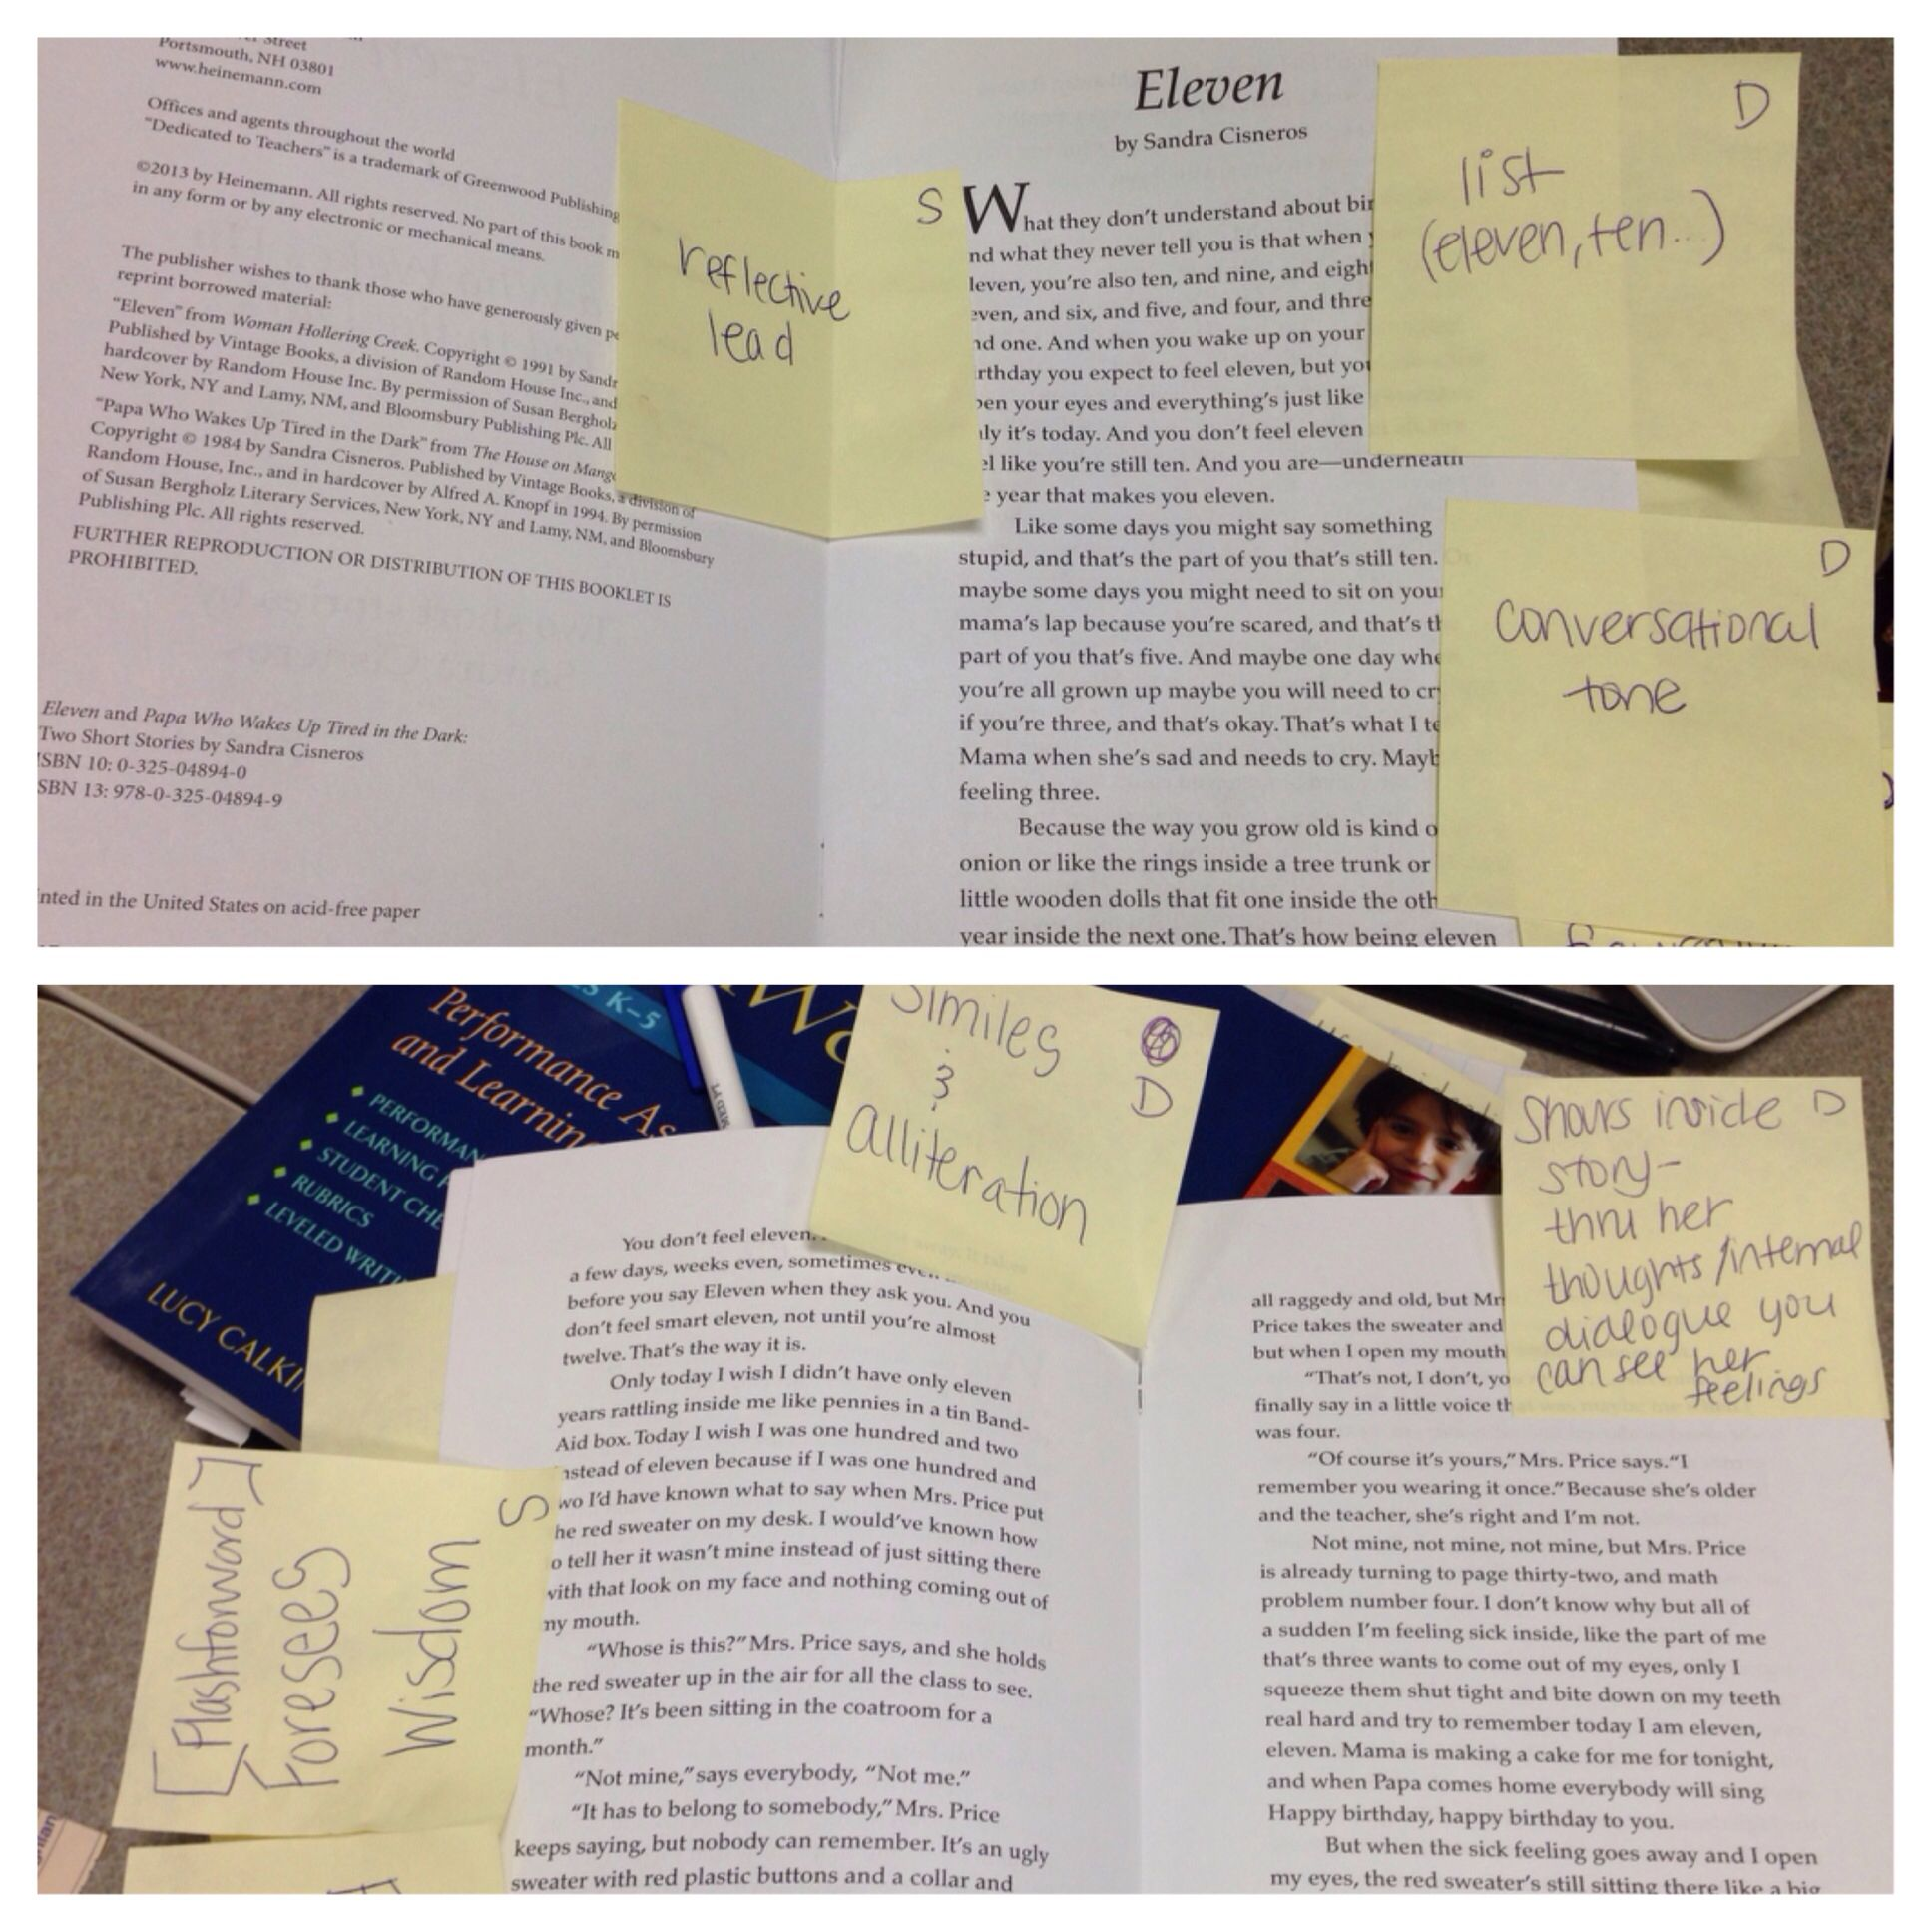 close reading of eleven by sandra cisneros make noticings close reading of eleven by sandra cisneros make noticings utilizing the learning progression and code